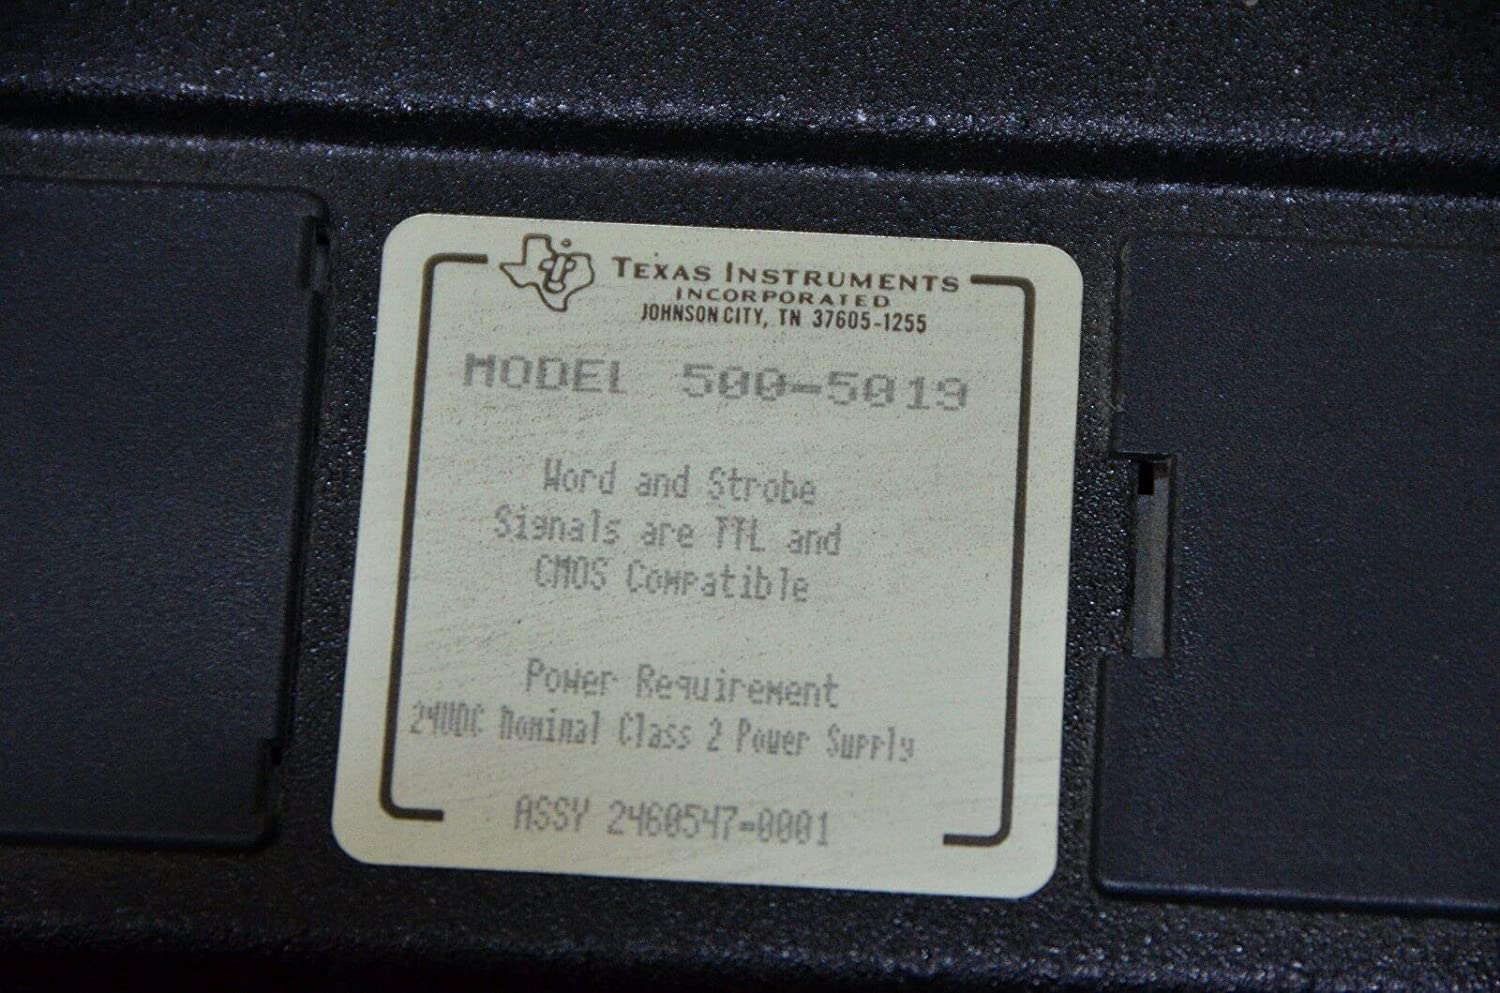 Texas Instruments 500-5019 WORD OUTPUT MODULE ASSY NO 2460547-0001